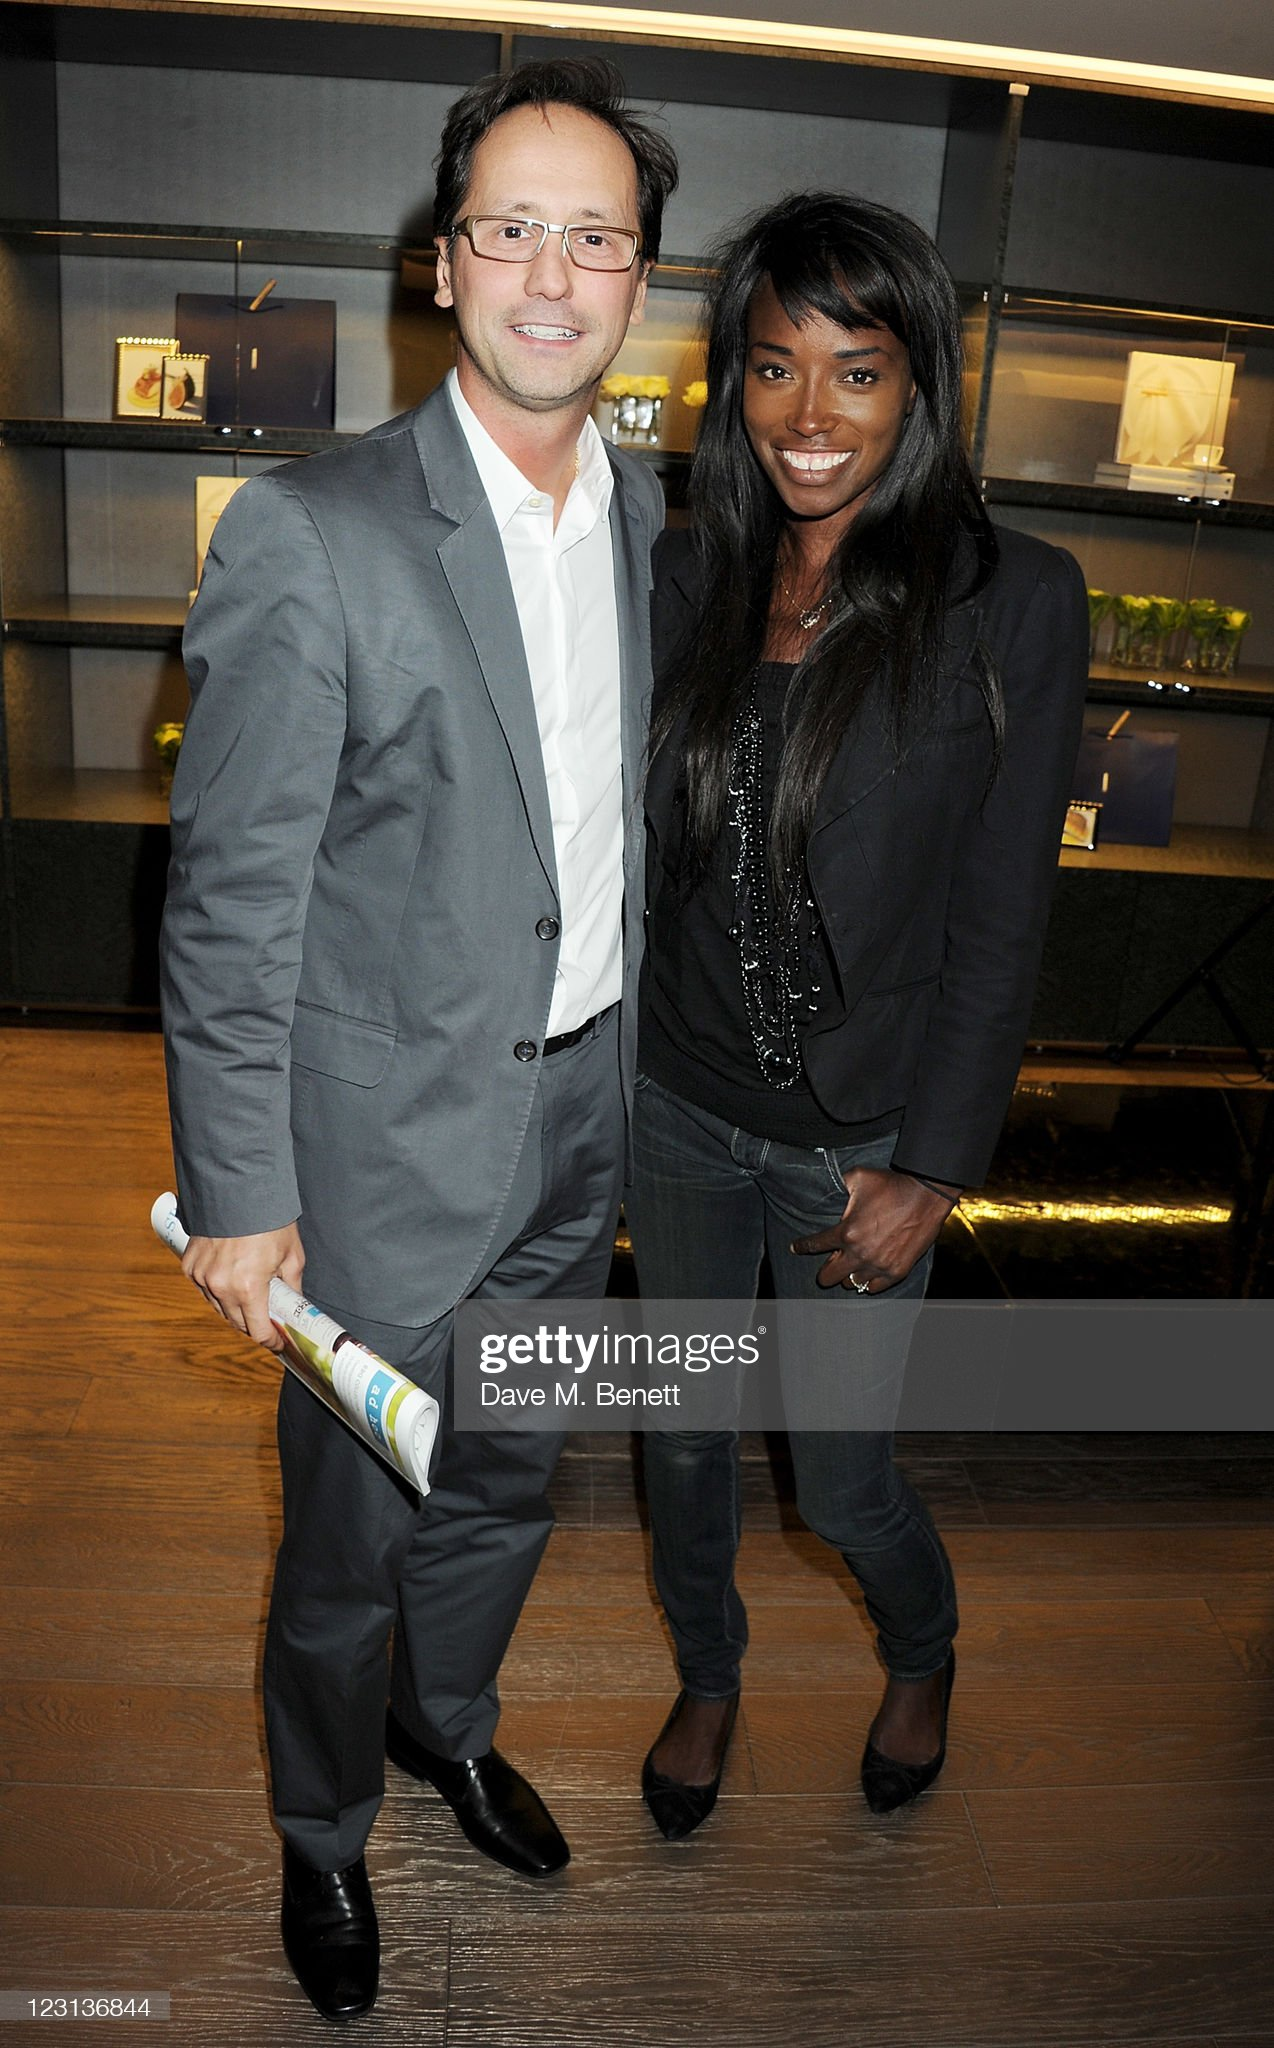 ¿Cuánto mide Lorraine Pascale? - Altura - Real height Alexis-gauthier-and-lorraine-pascale-attend-the-launch-of-the-french-picture-id123136844?s=2048x2048